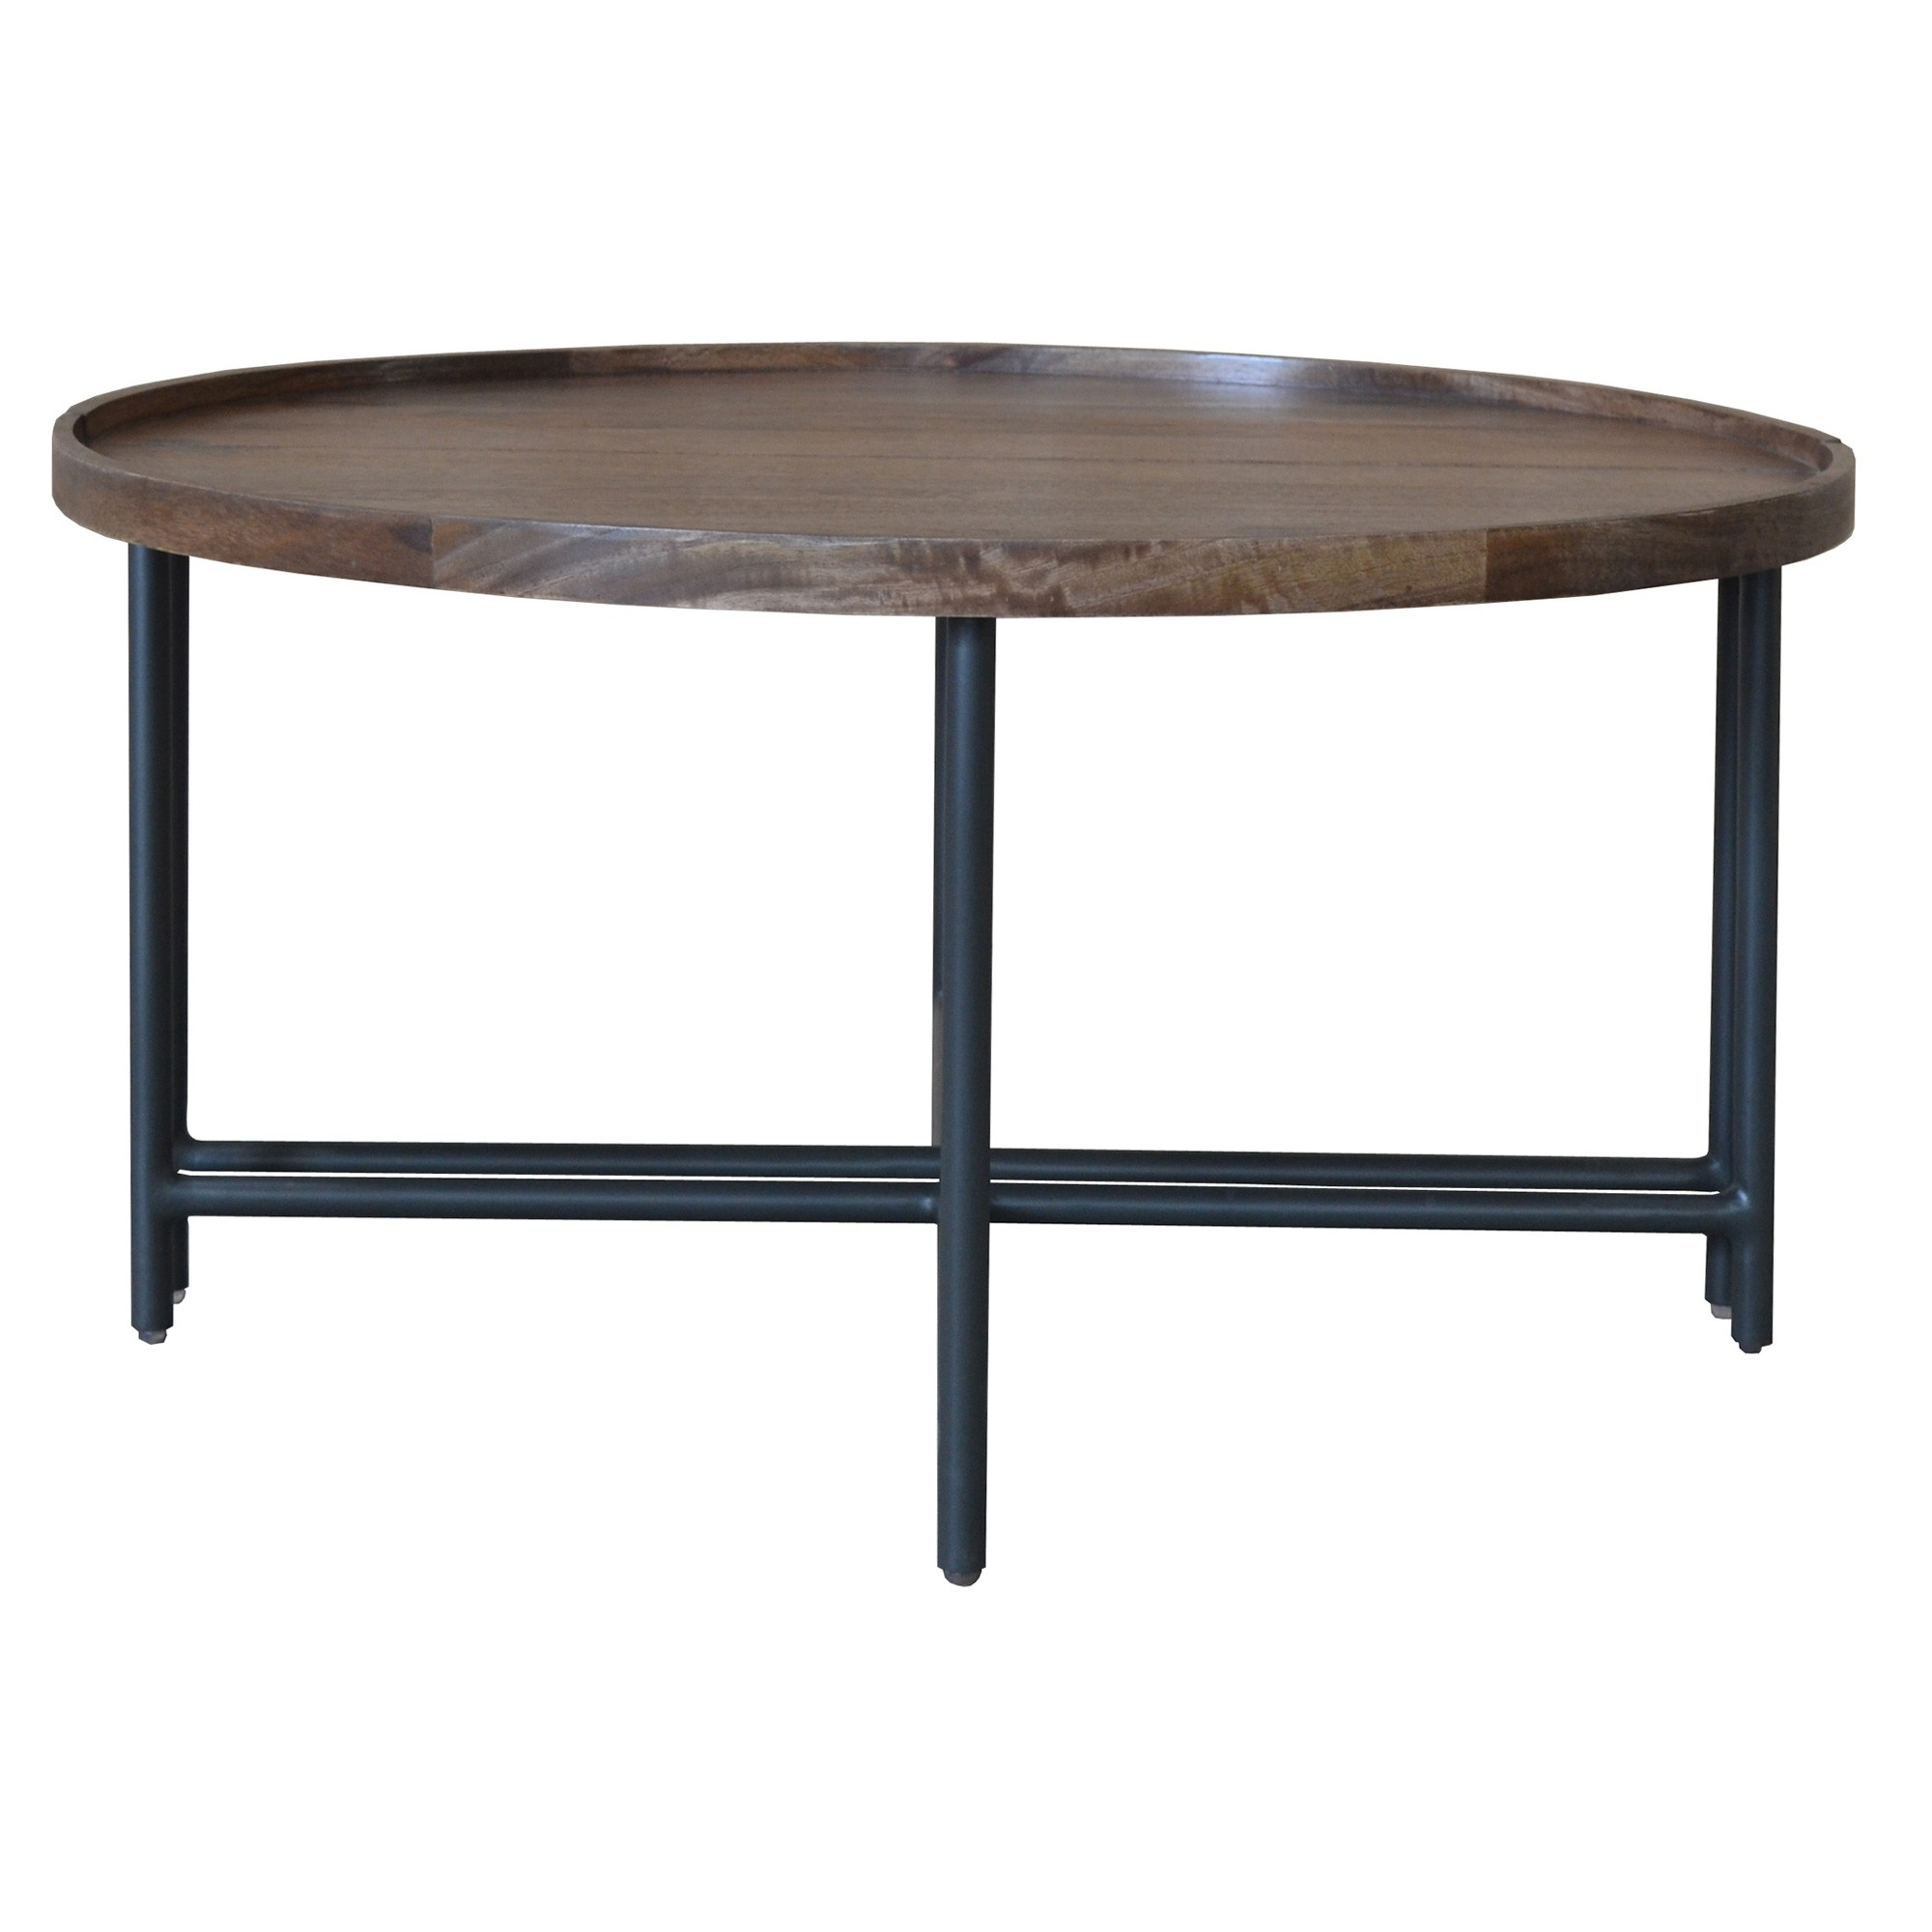 Mirabel Mango Wood & Metal Round Coffee Table, 80cm